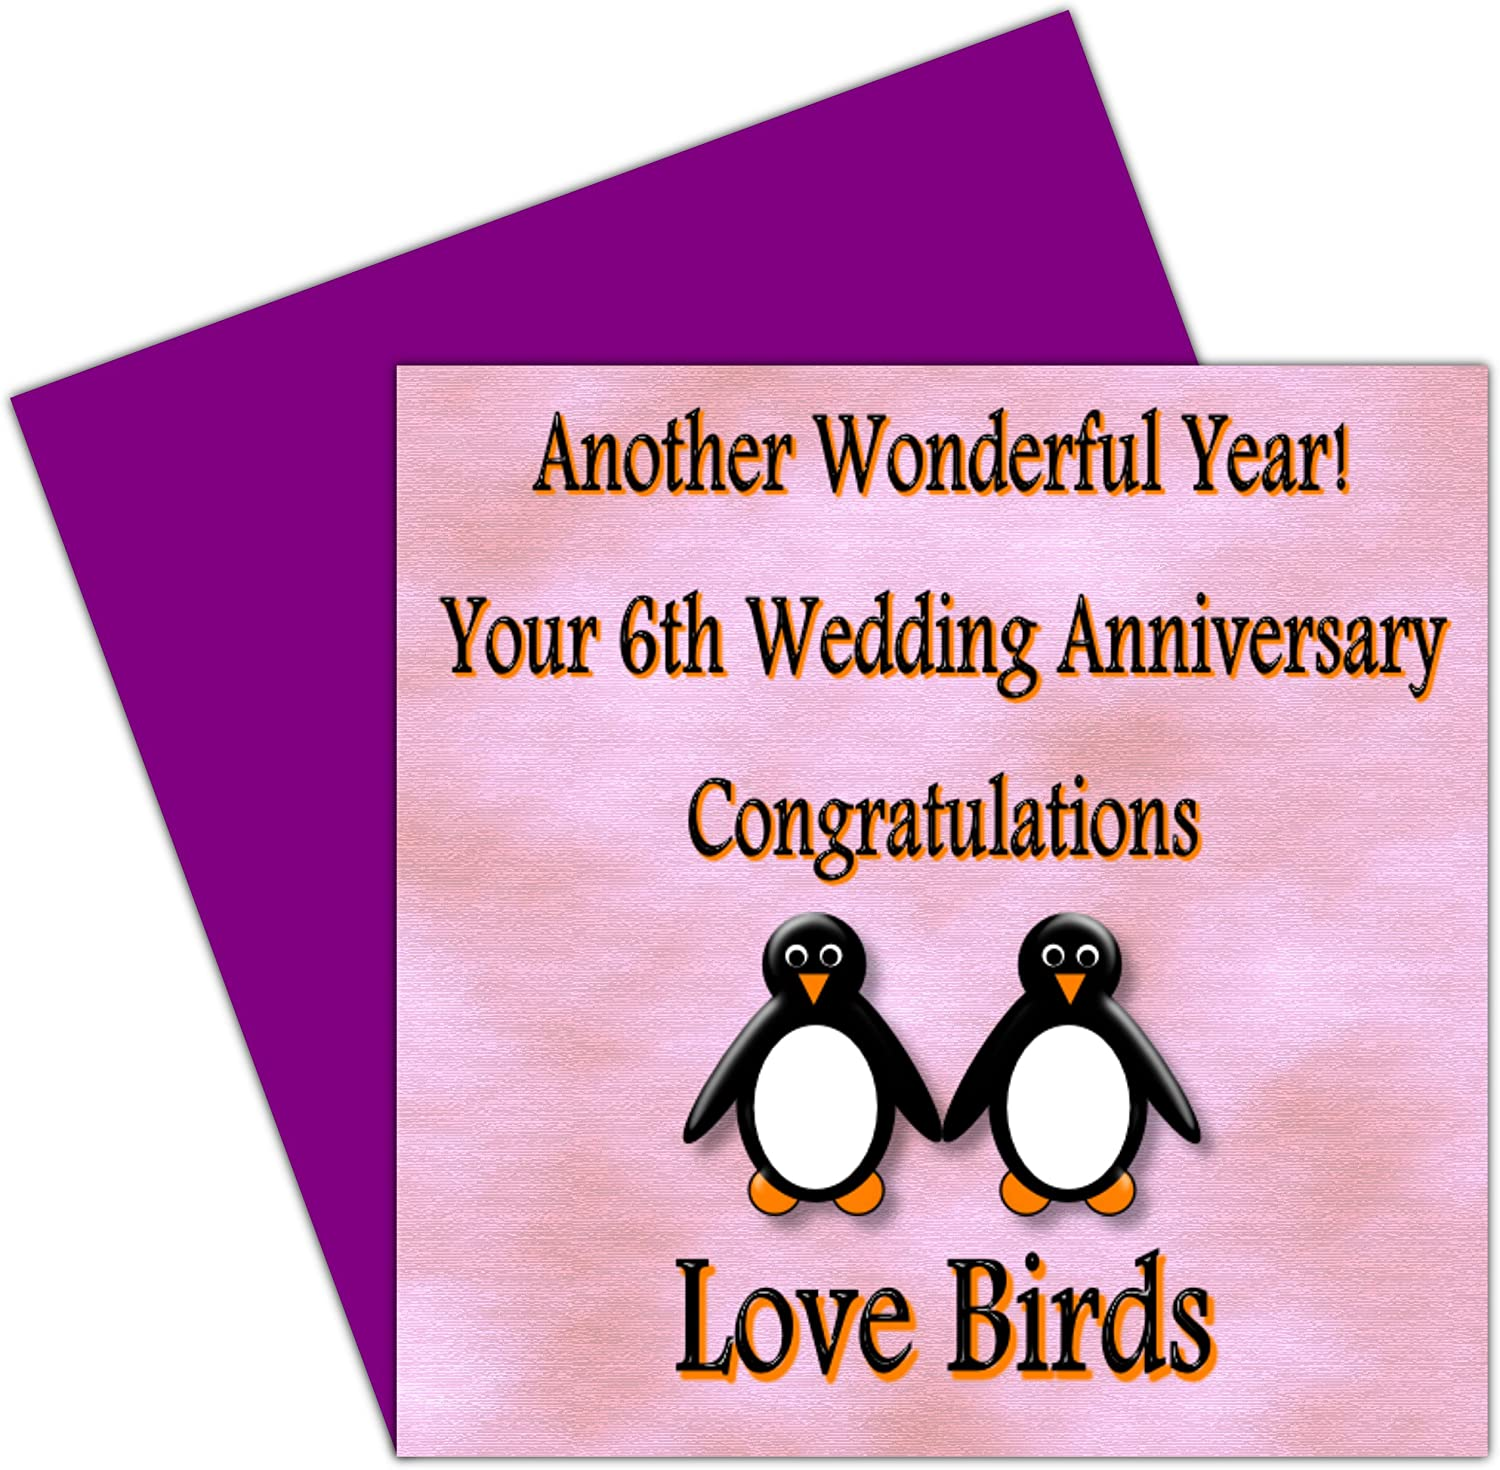 On Your 4th Wedding Anniversary Card - 4 Years – Iron Anniversary - Rosie  Posie Penguin Design for Family & Friends